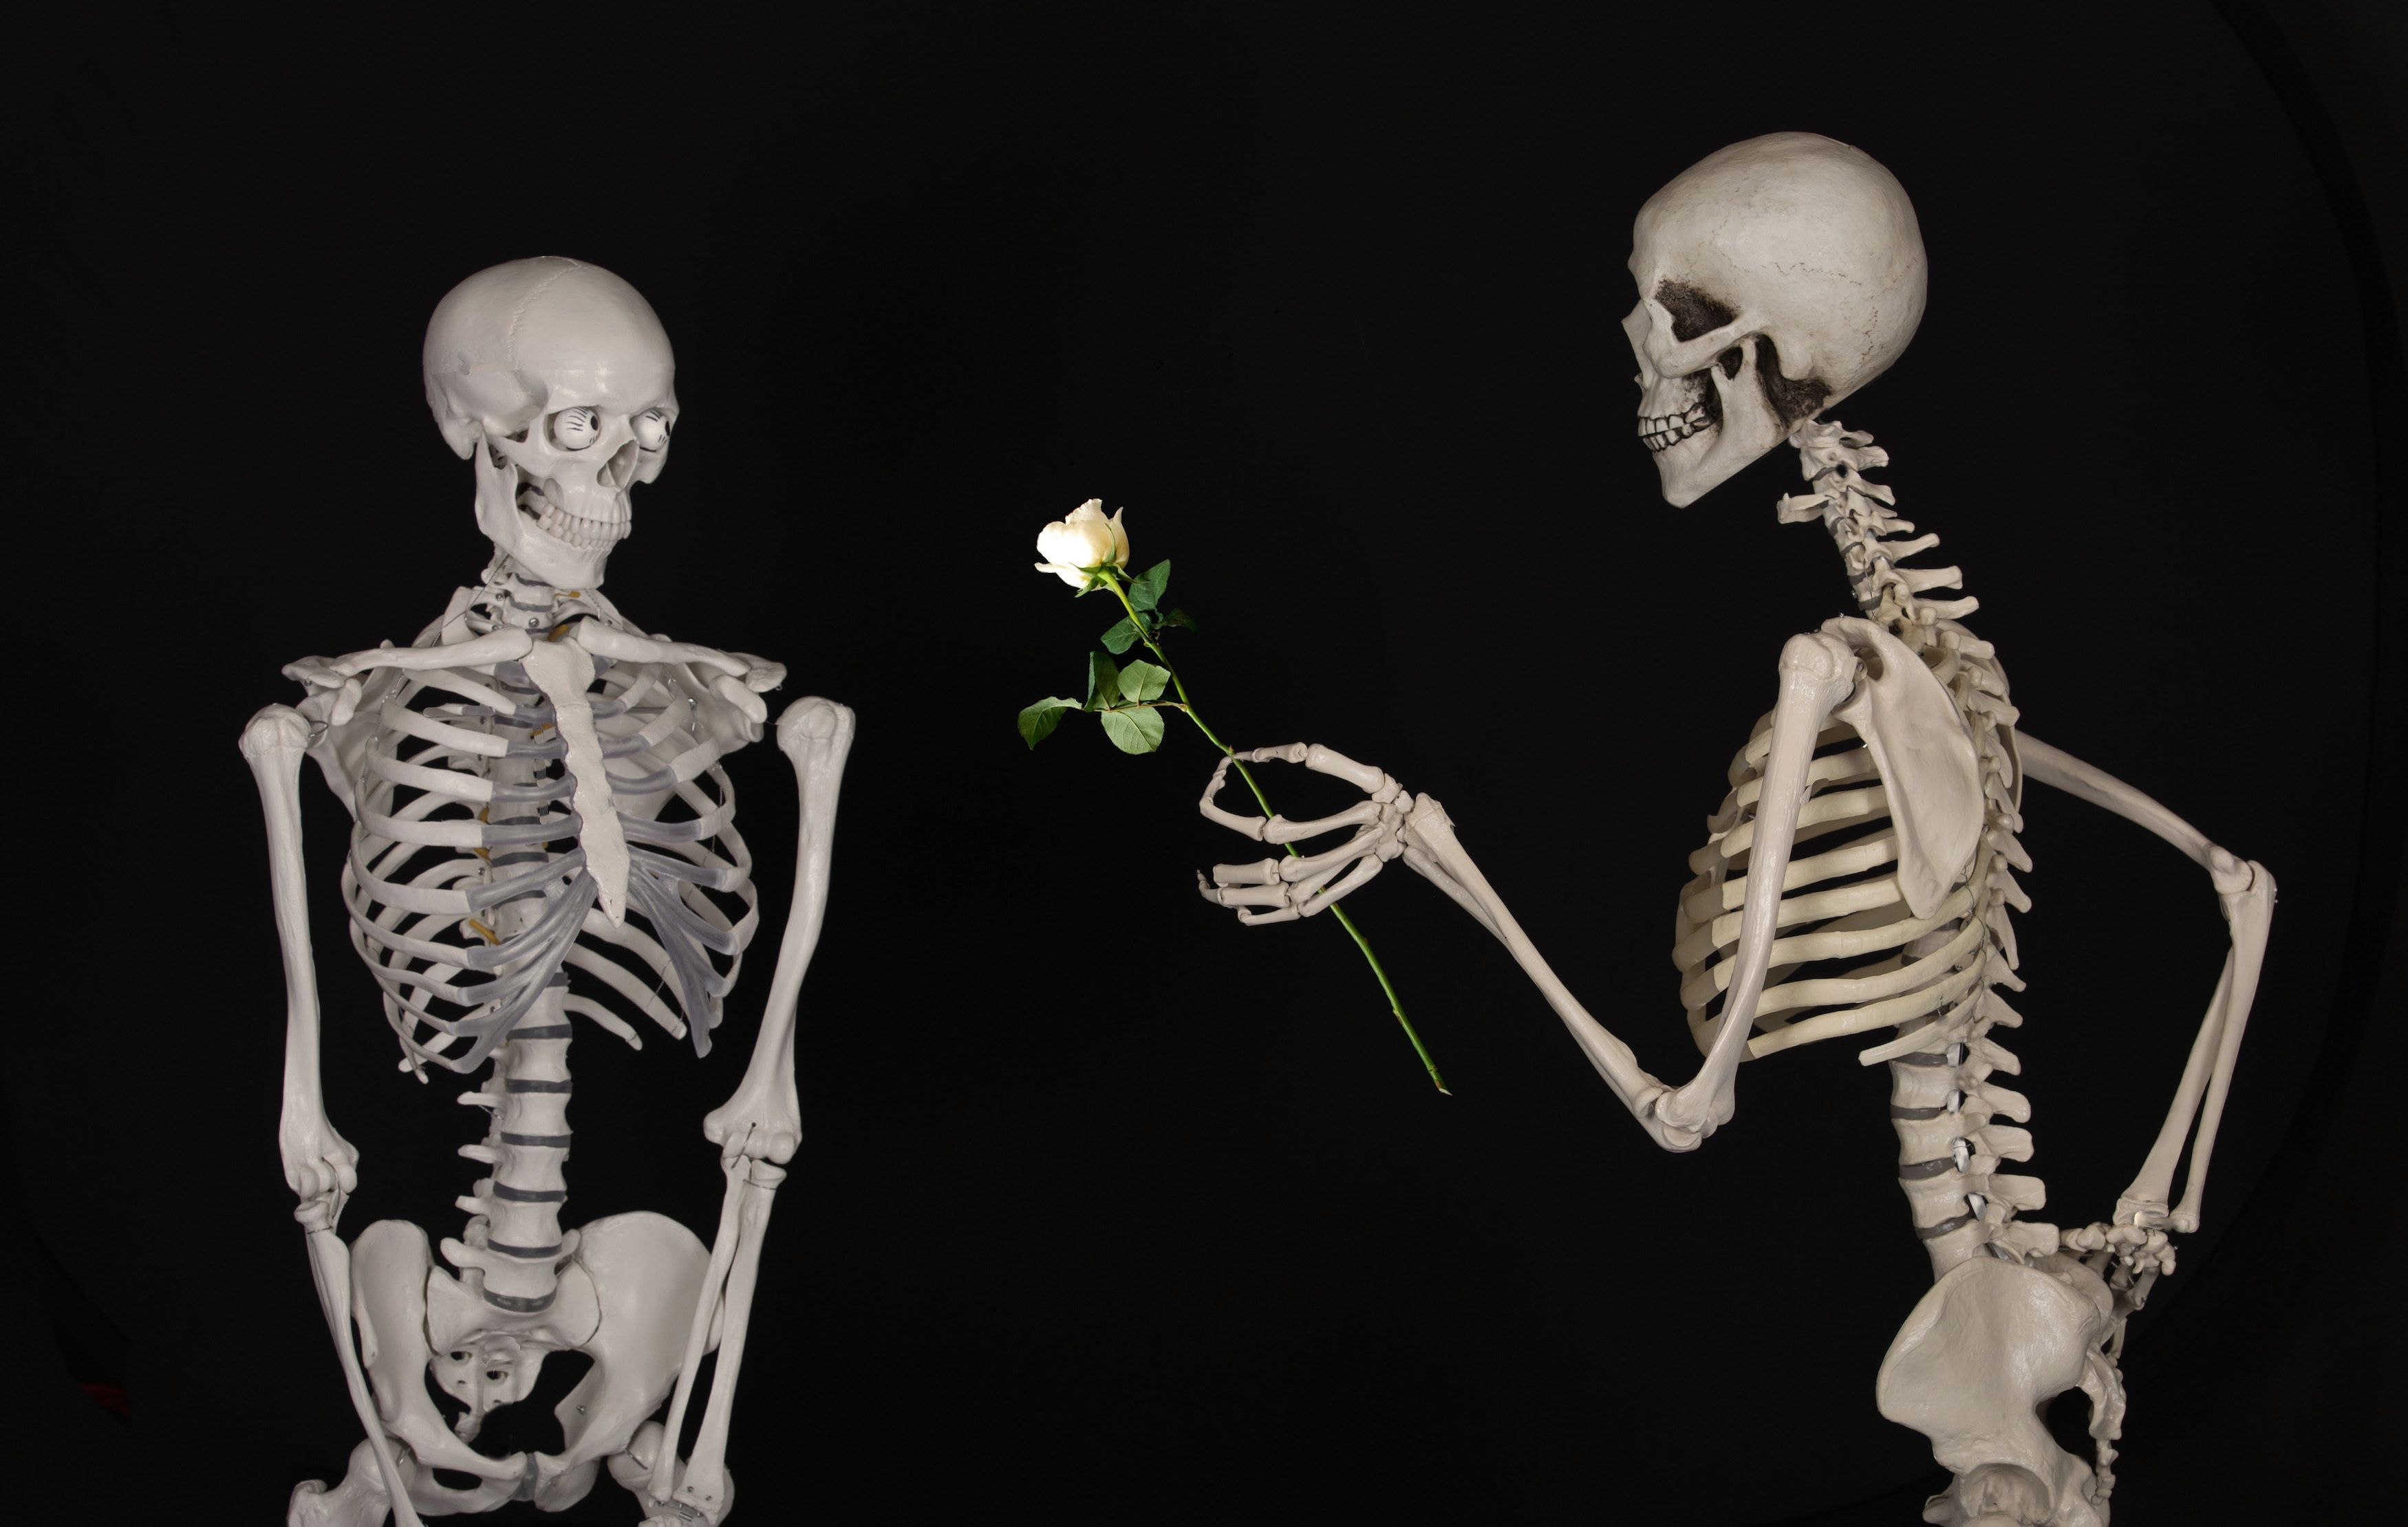 The late Propose Death aesthetic, Cute skeleton, Grunge